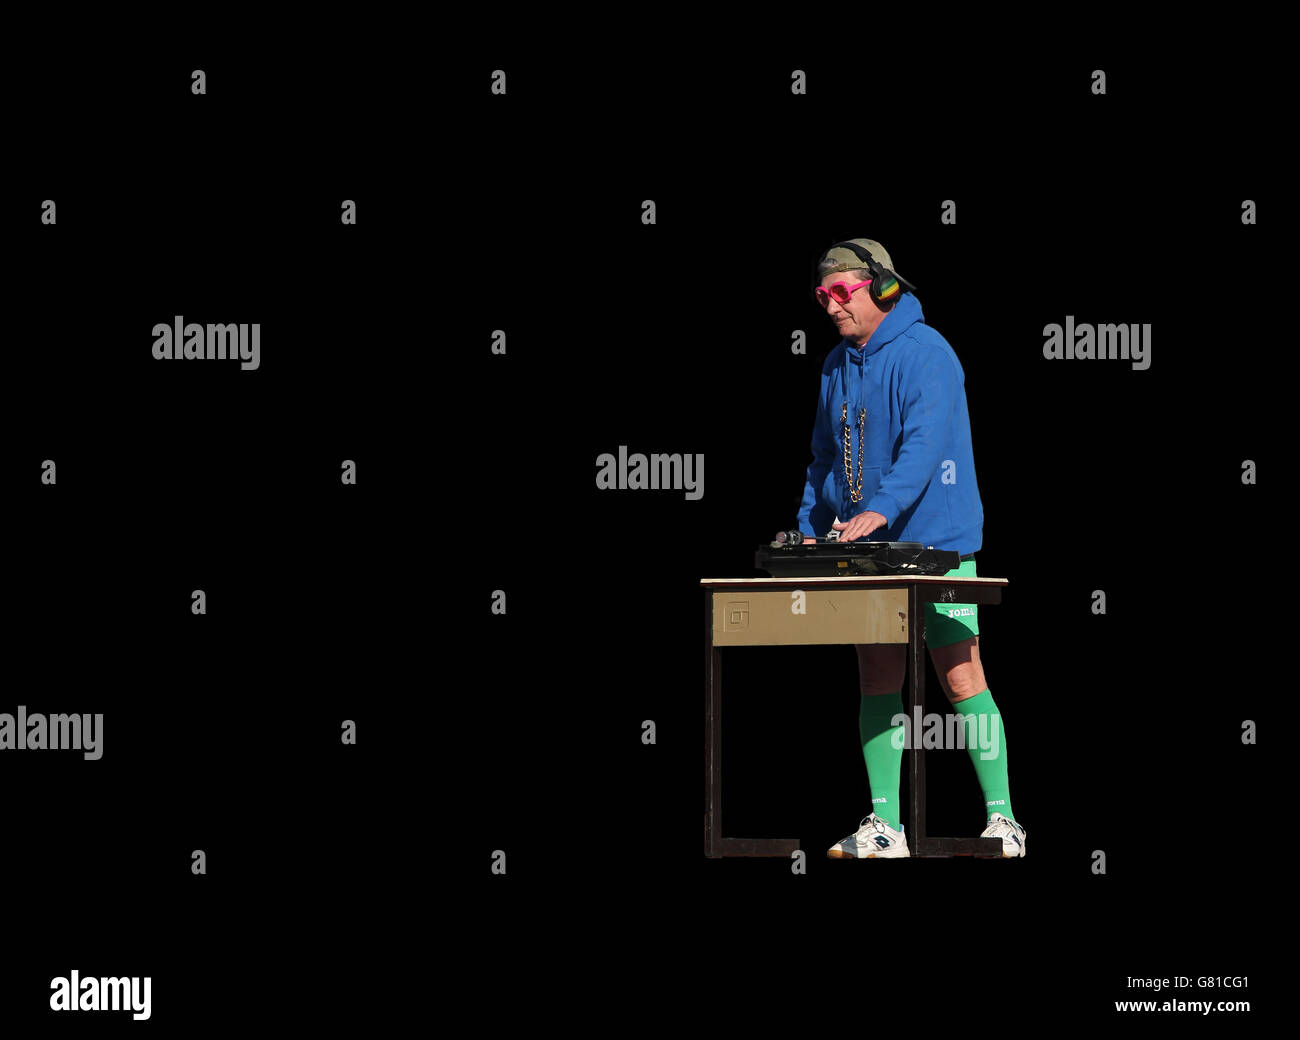 Funny dressed DJ playing music in sports equipement - Stock Image